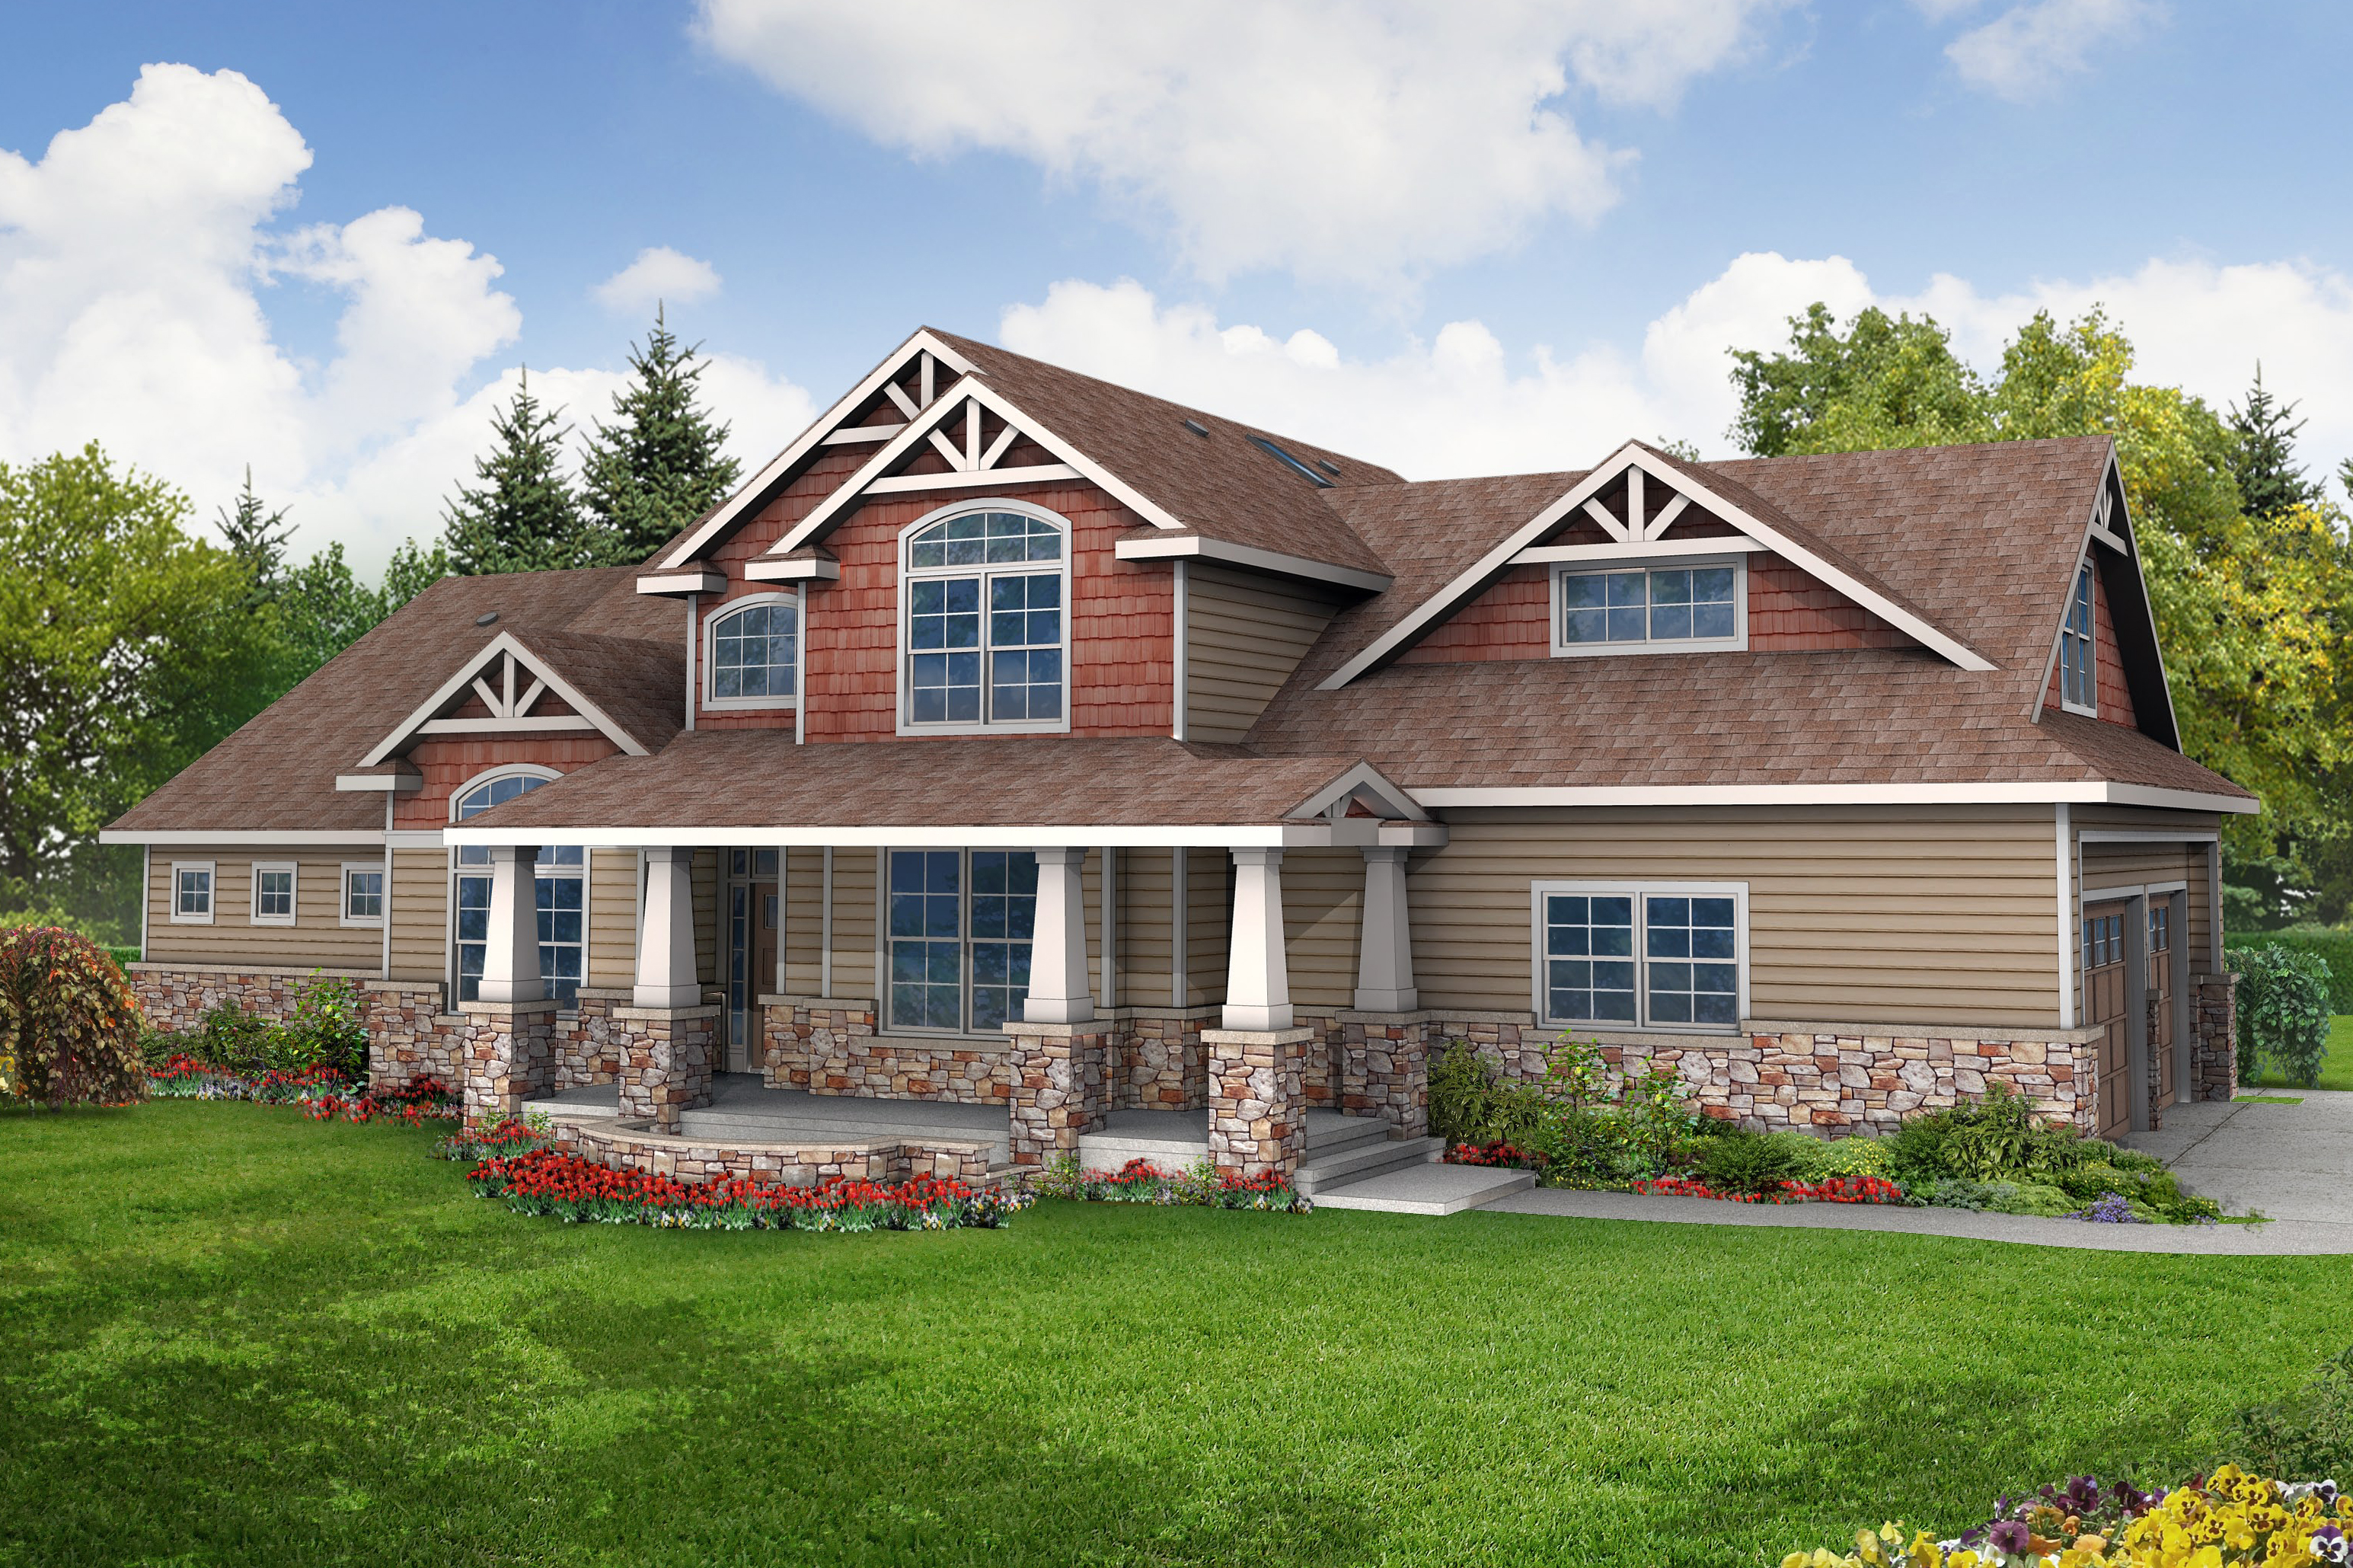 Craftsman house plans craftsman home plans craftsman for New craftsman homes